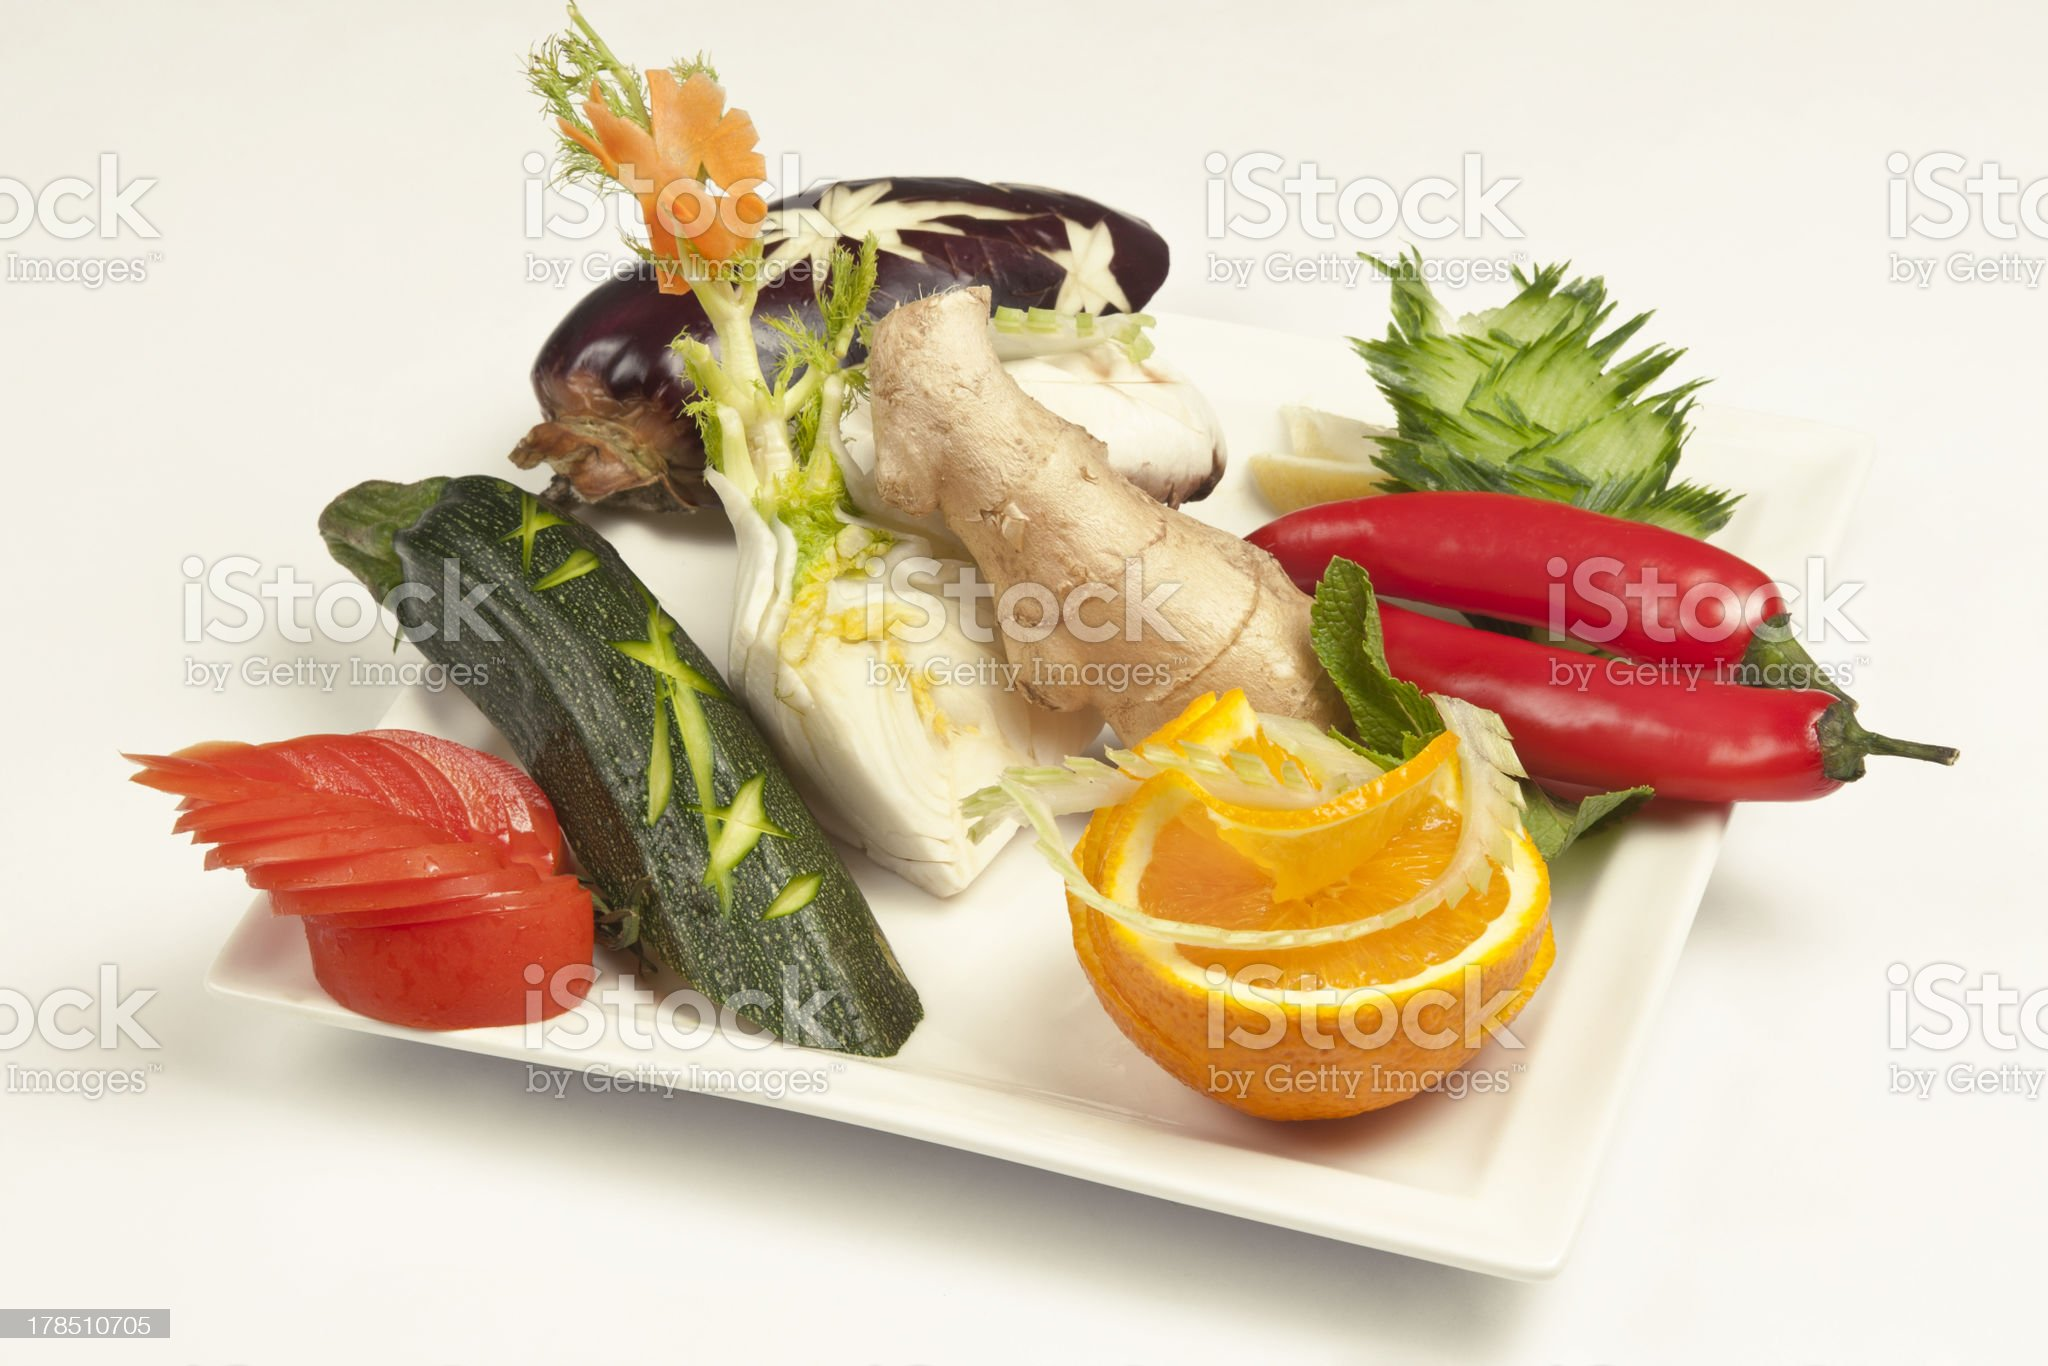 Assortment of raw vegetables royalty-free stock photo